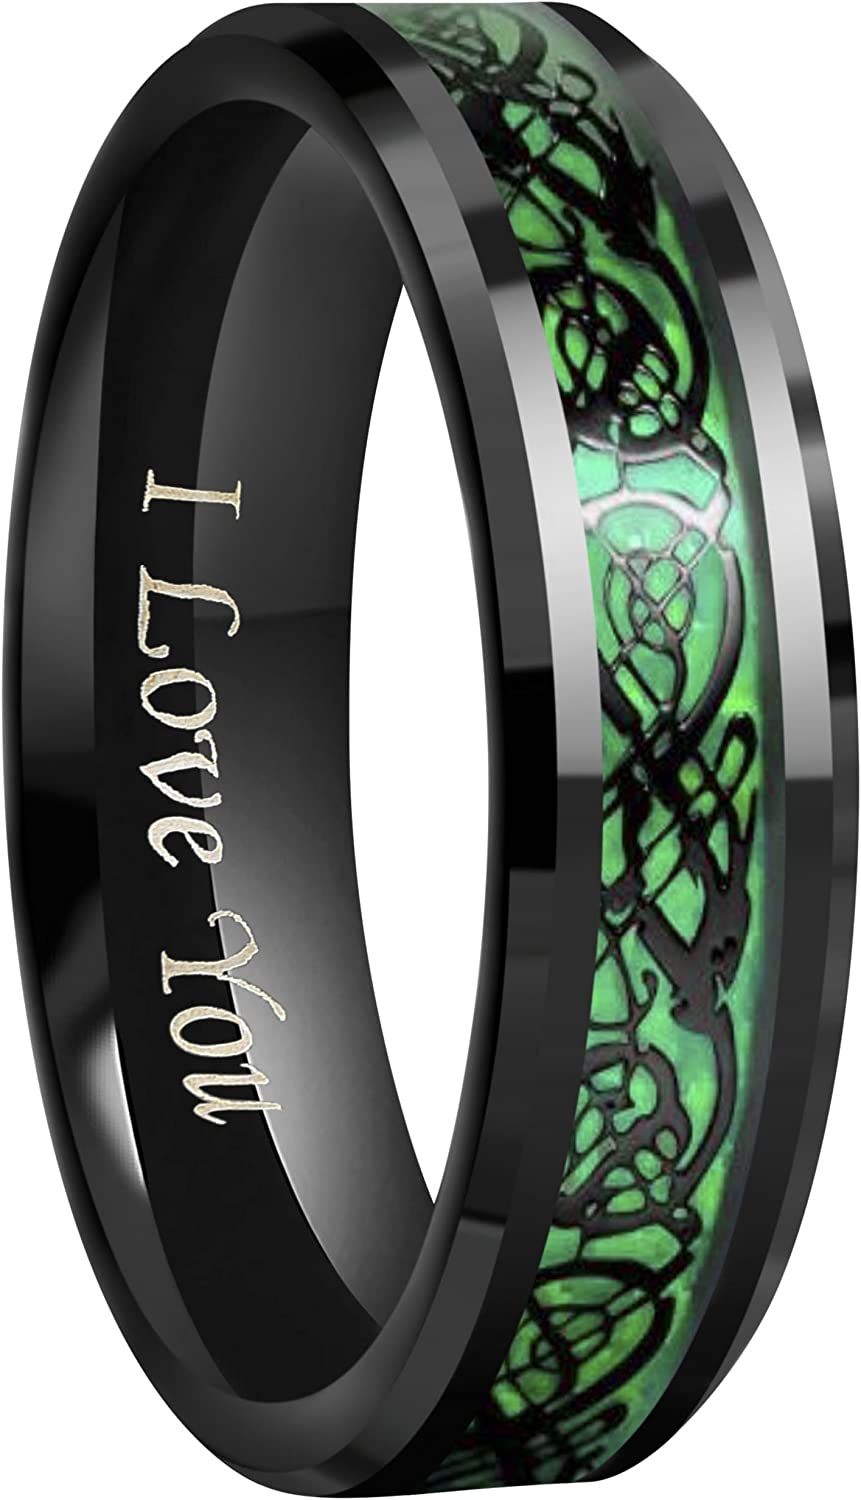 "Crownal 6mm 8mm Green Carbon Fiber Black Celtic Dragon Tungsten Carbide Wedding Band Ring Engraved""I Love You"" Size 4 To 16"